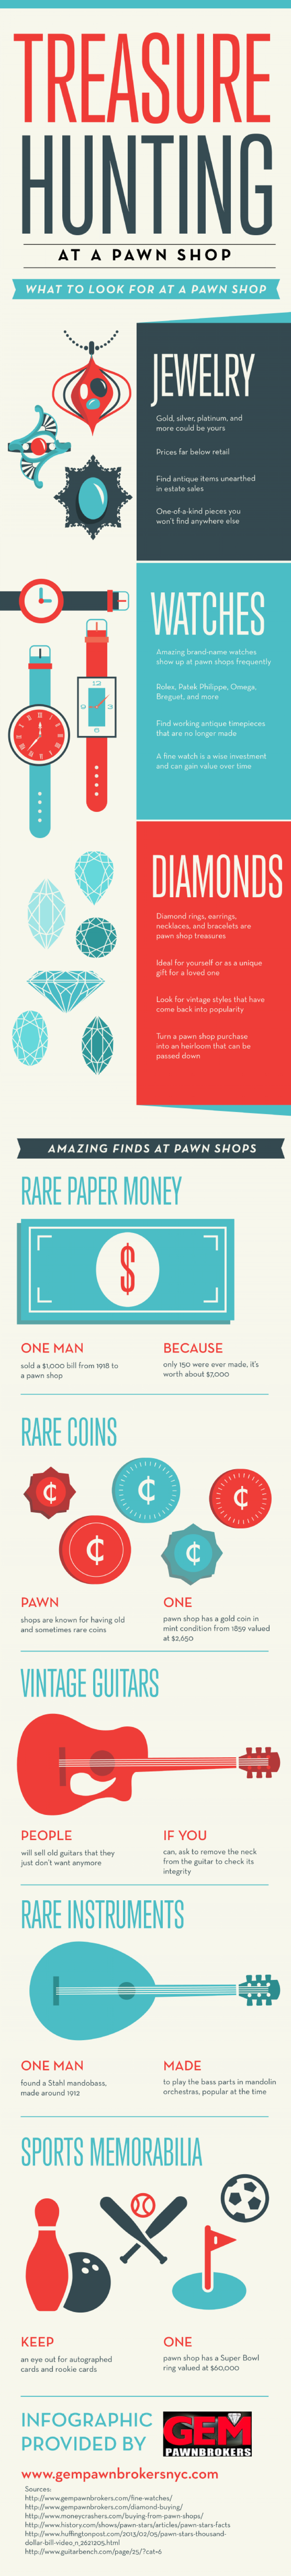 Treasure Hunting at a Pawn Shop  Infographic